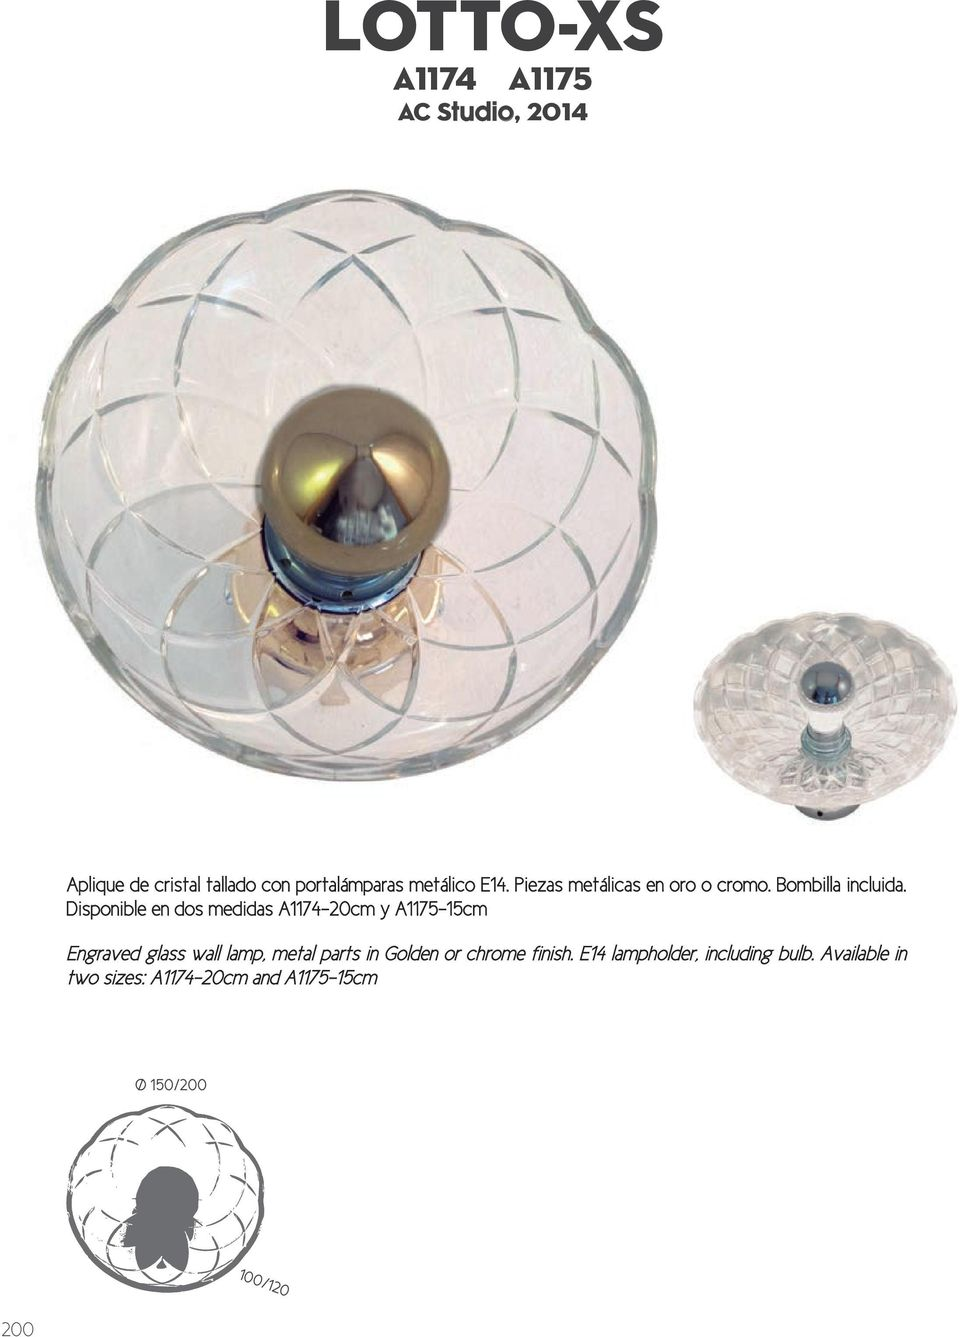 Disponible en dos medidas A1174-20cm y A1175-15cm Engraved glass wall lamp, metal parts in